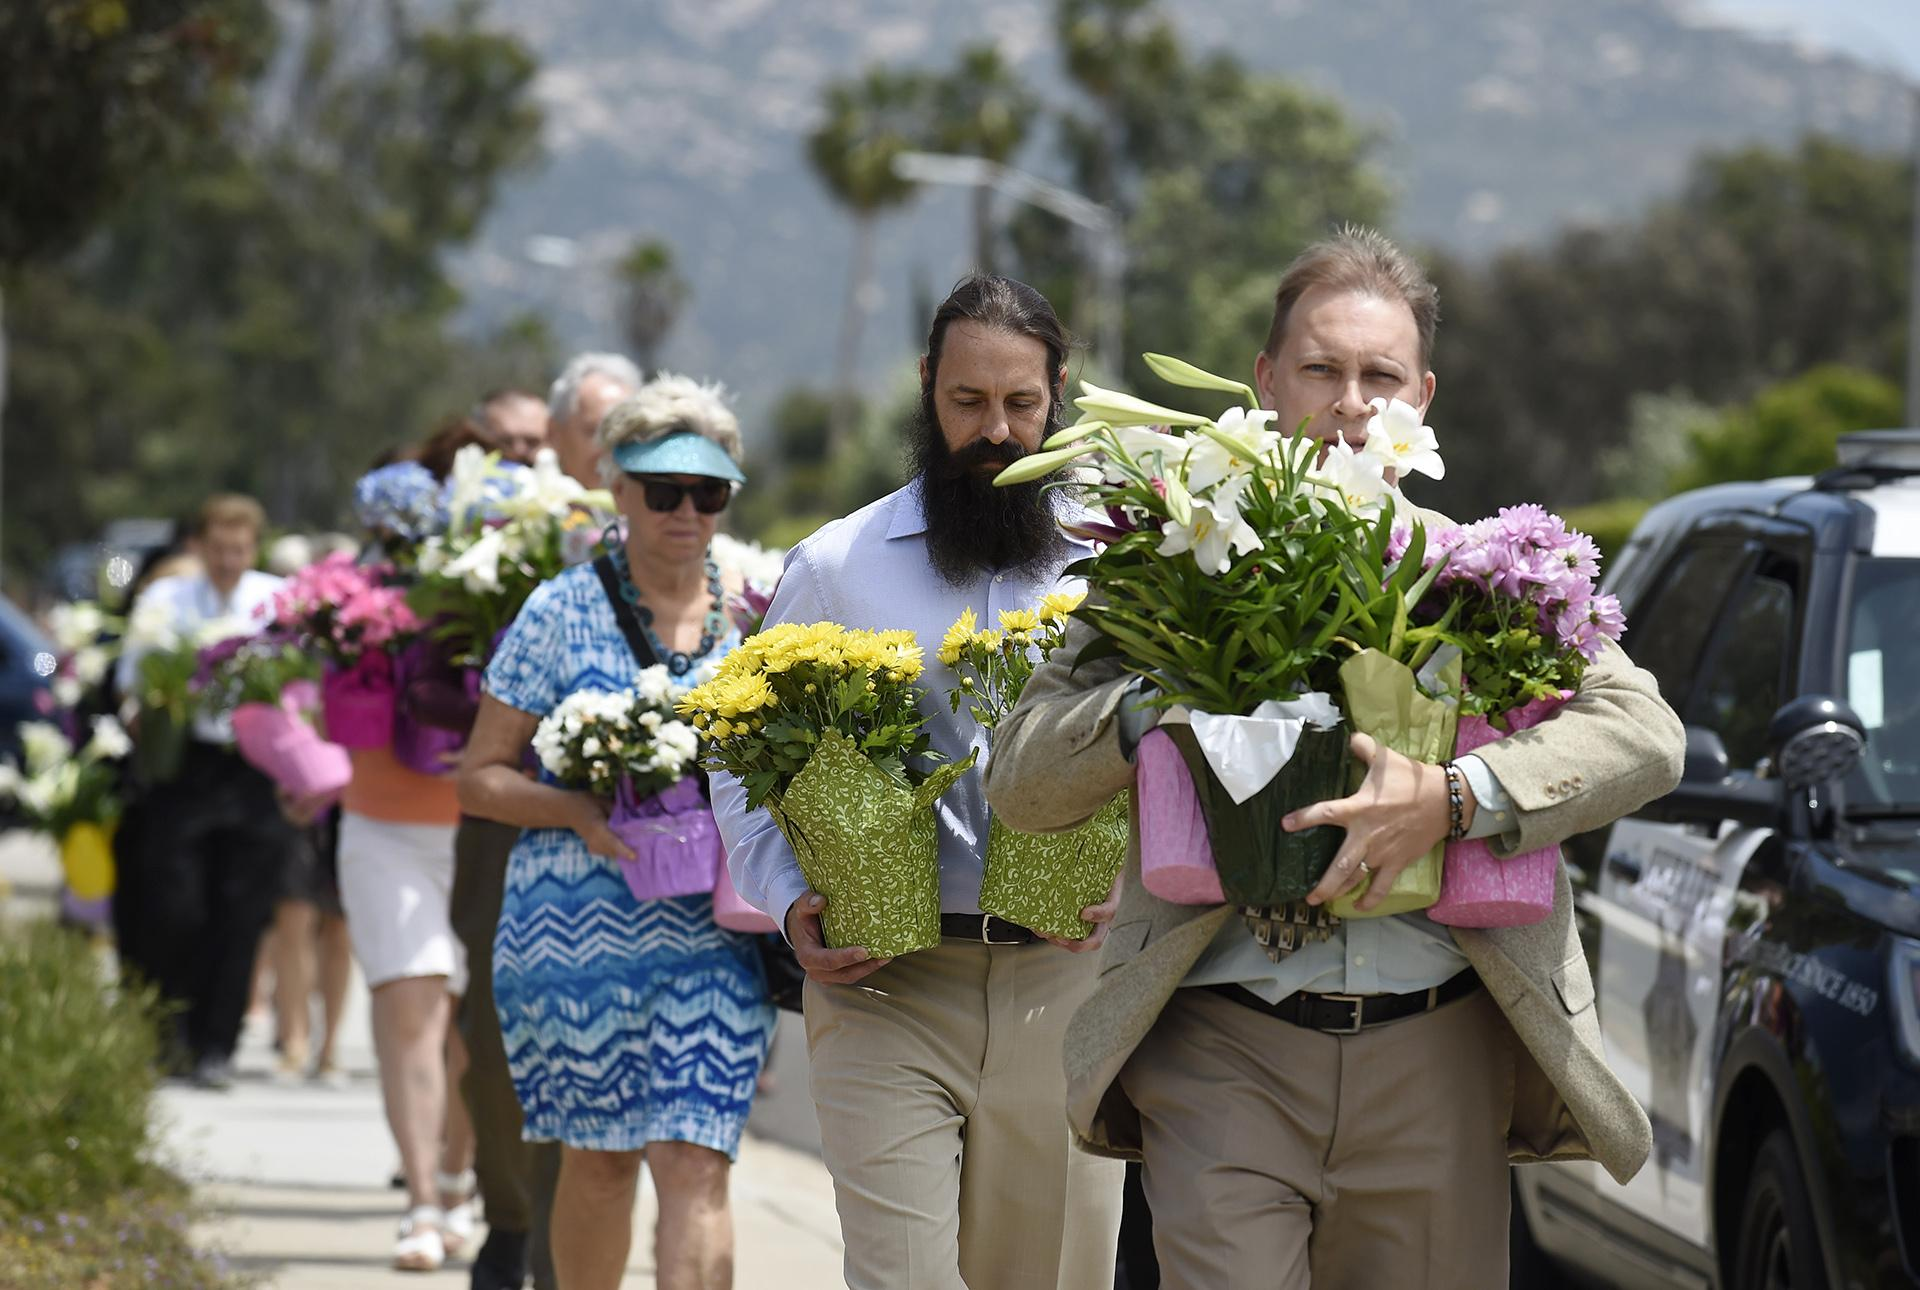 Members of the St. John of Damascus Orthodox Church bring flowers to a memorial at the Chabad of Poway synagogue, Sunday, April 28, 2019, in Poway, California. (AP Photo / Denis Poroy)